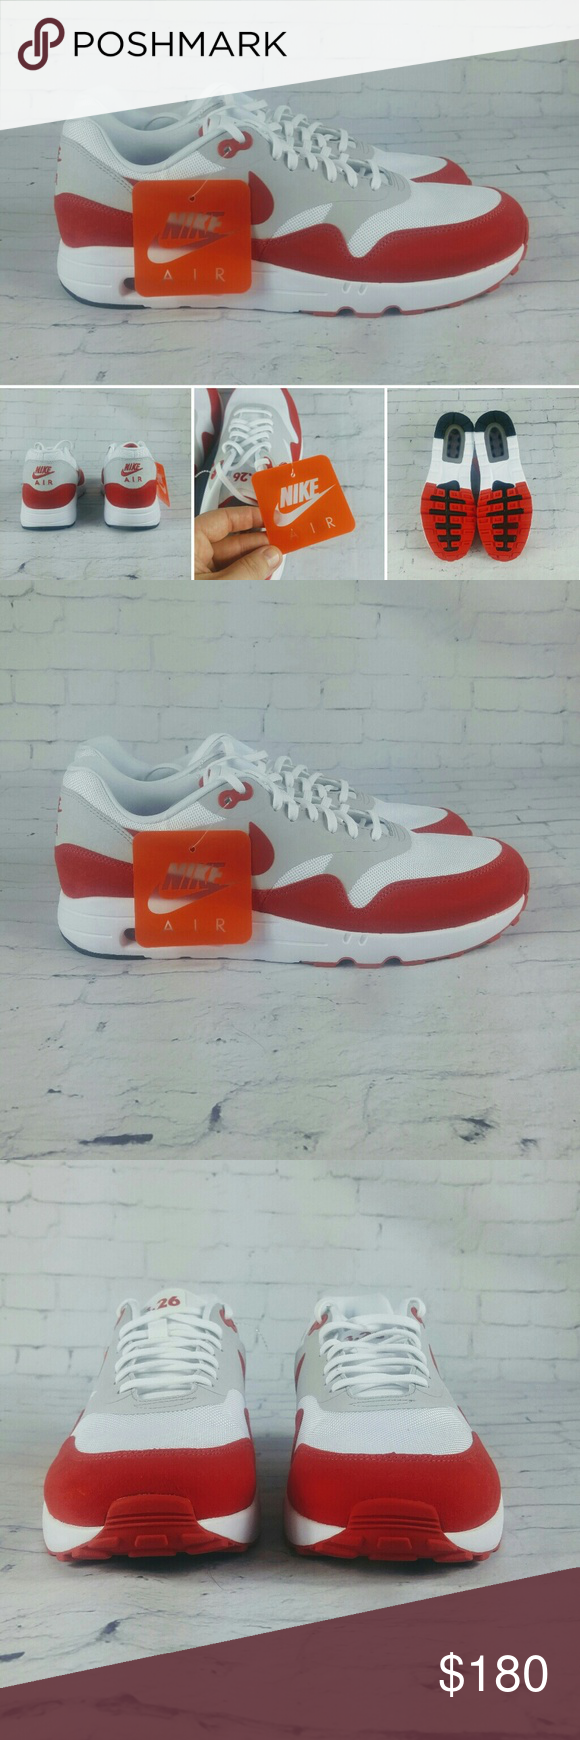 0d155b07e6 New Nike Air Max 1 Ultra 2.0 LE White Red 3.26 You are buying Brand New